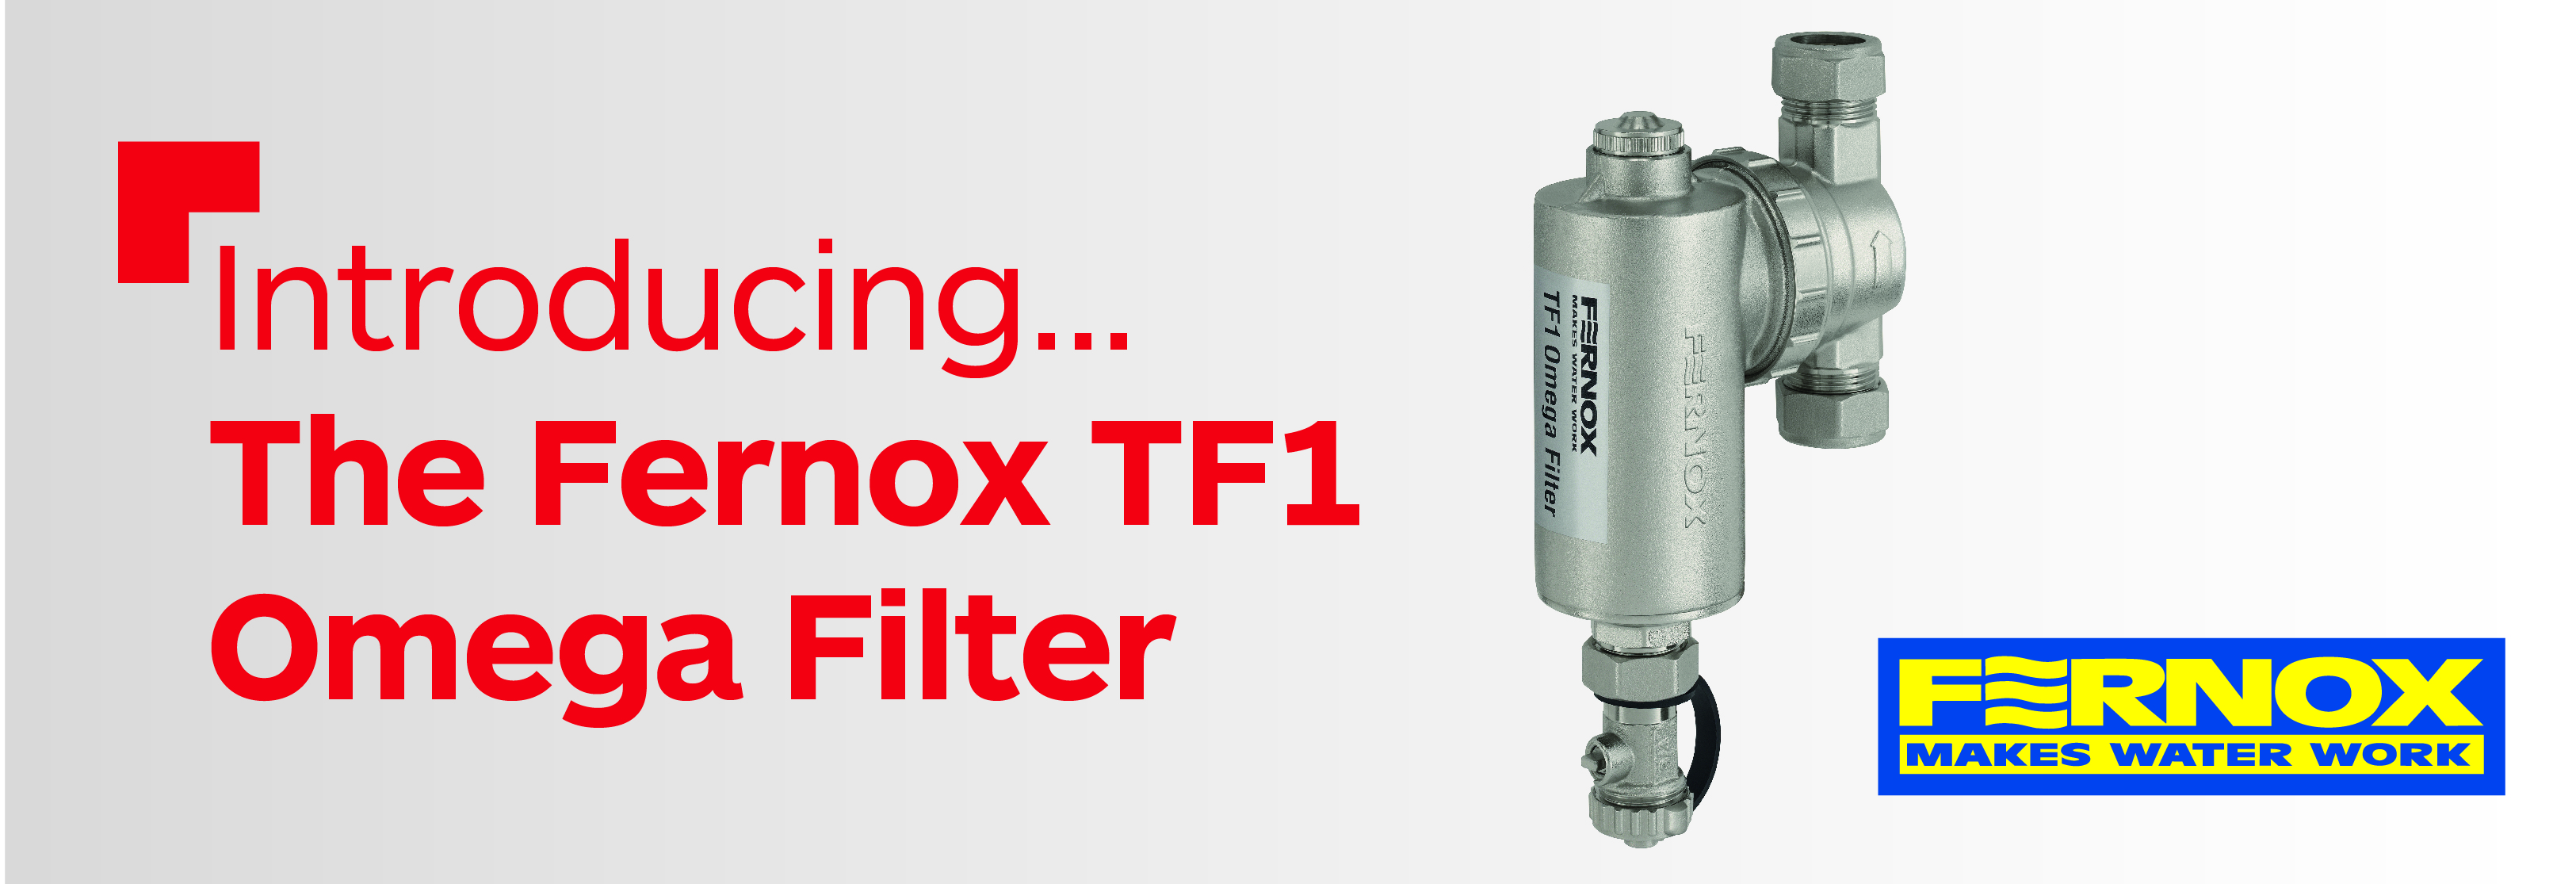 Coming soon: The Fernox TF1 Omega Filter